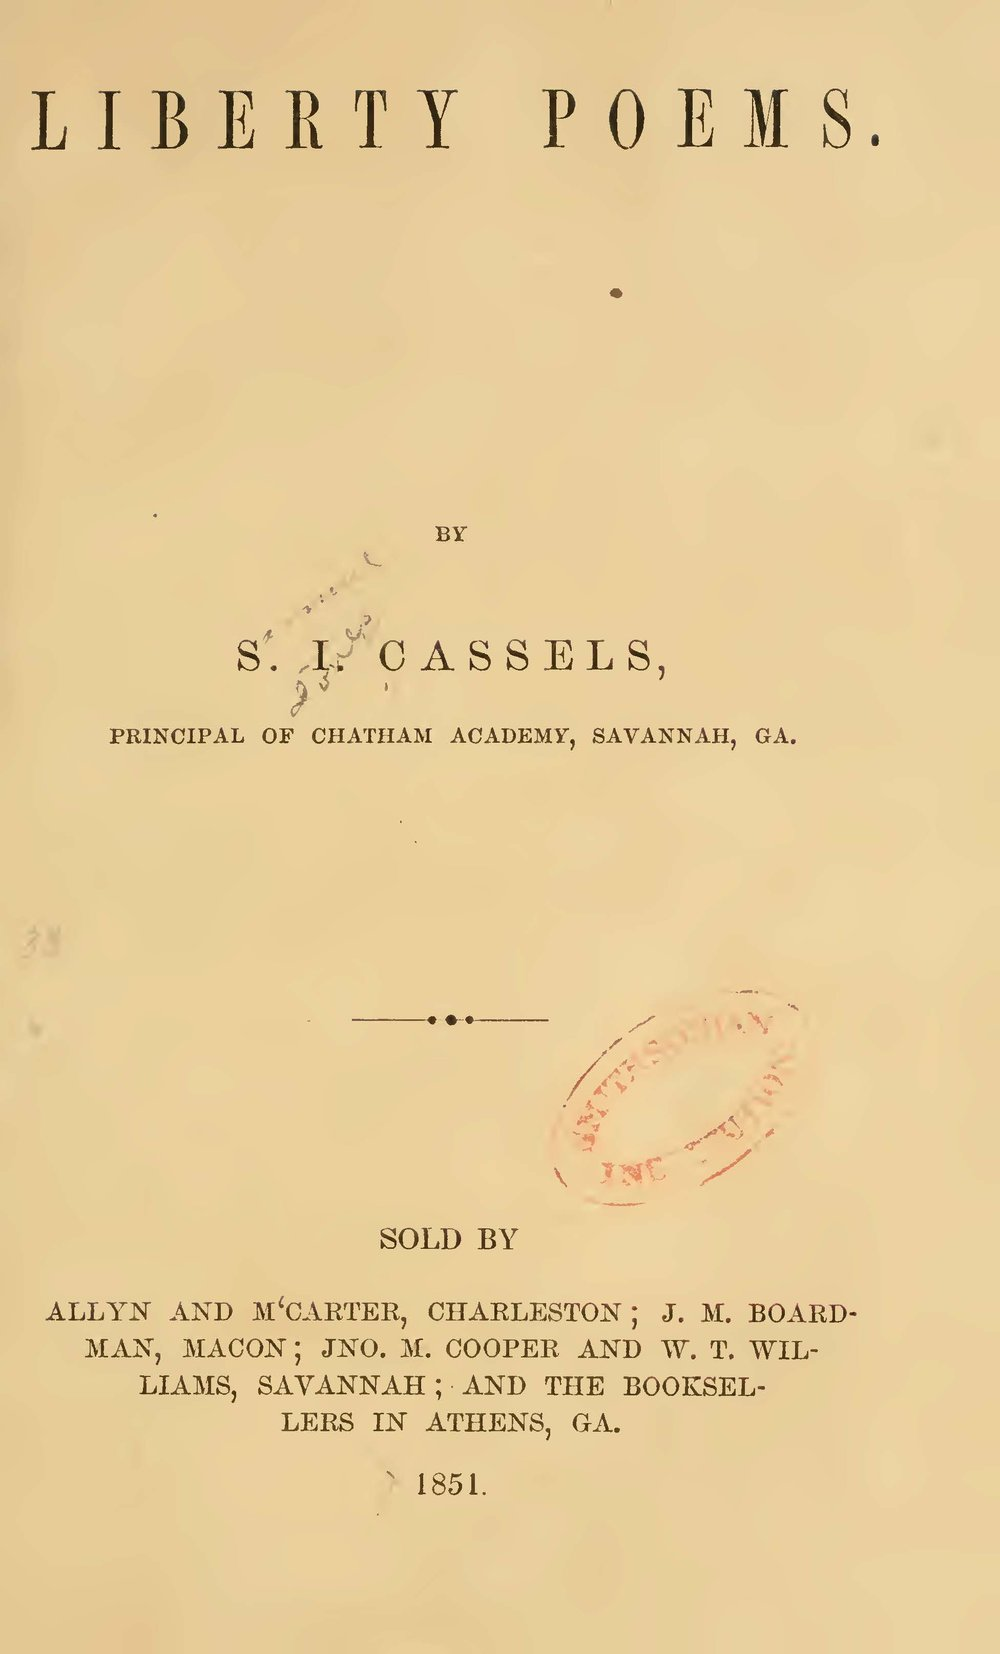 Cassells, Samuel J., Liberty Poems Title Page.jpg